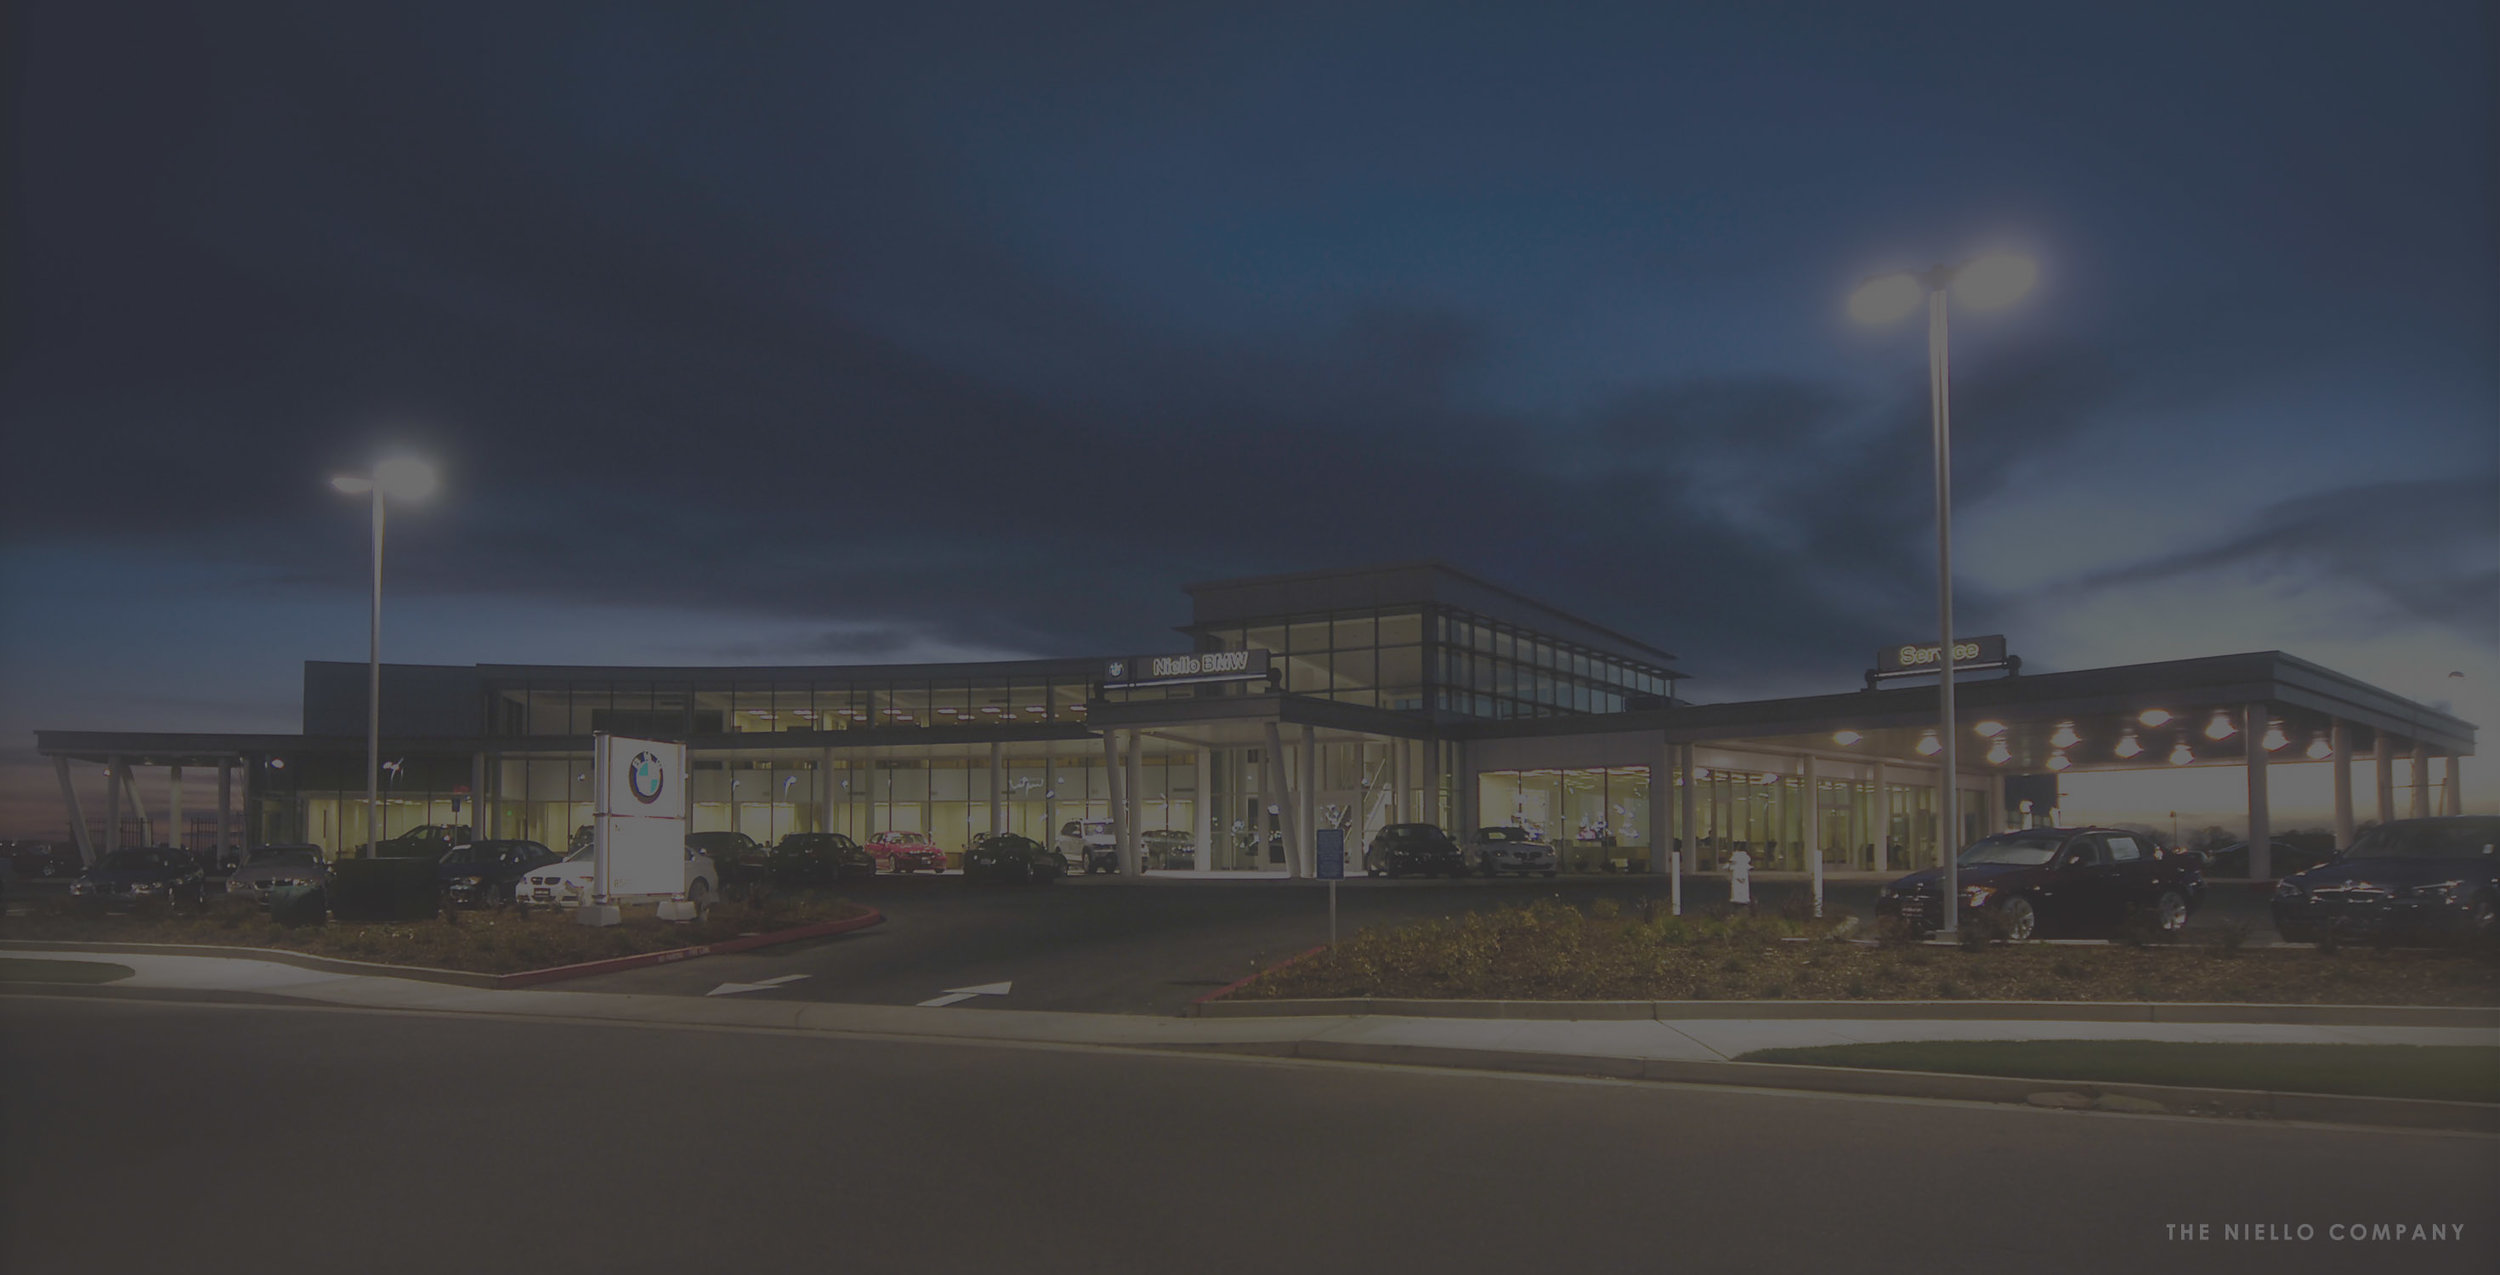 """A new BMW facility in Elk Grove, California reflects the premium quality and elegance of the BMW vehicle design. With a total building area of 53,900 sq. ft., the curved exterior façade of the showroom and uniquely shaped, tower element are composed of an aluminum curtain wall system with high performance, energy efficient glazing for maximum visibility and a """"lightness"""" to the building."""